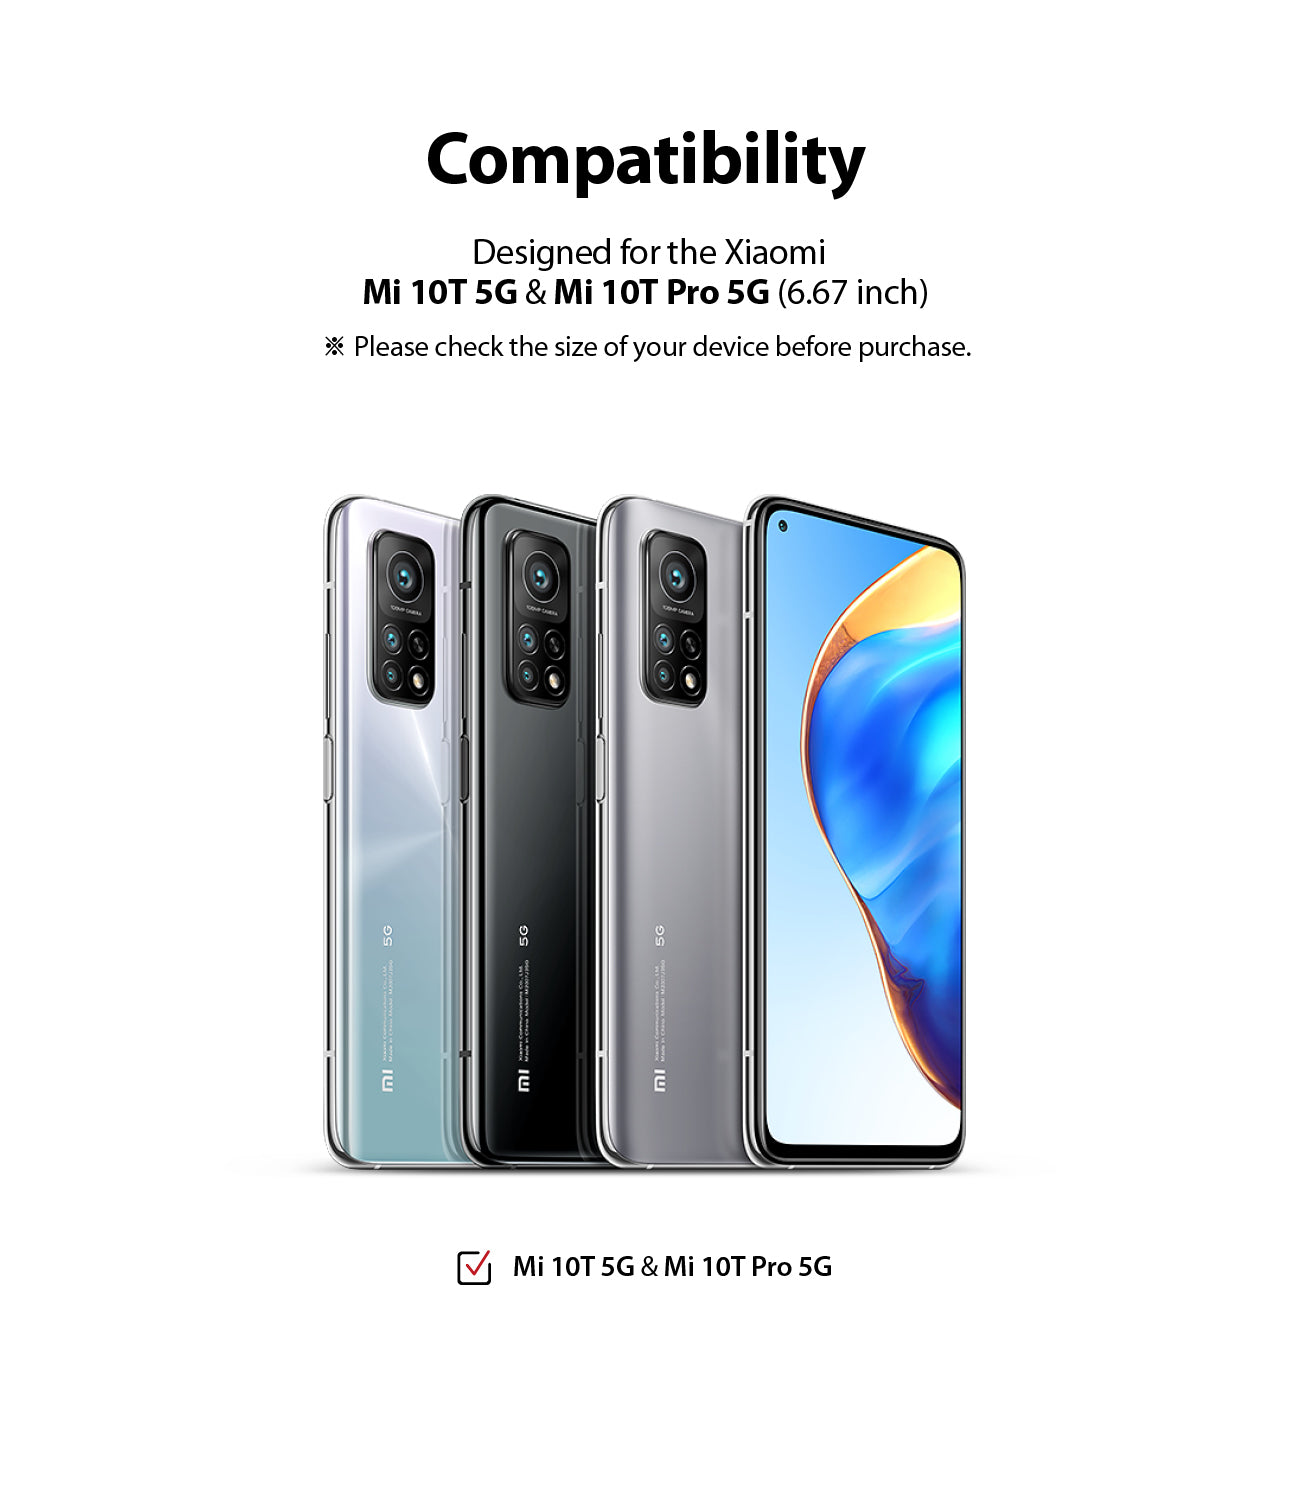 compatible with xiaomi mi 10t & 10t pro 5G